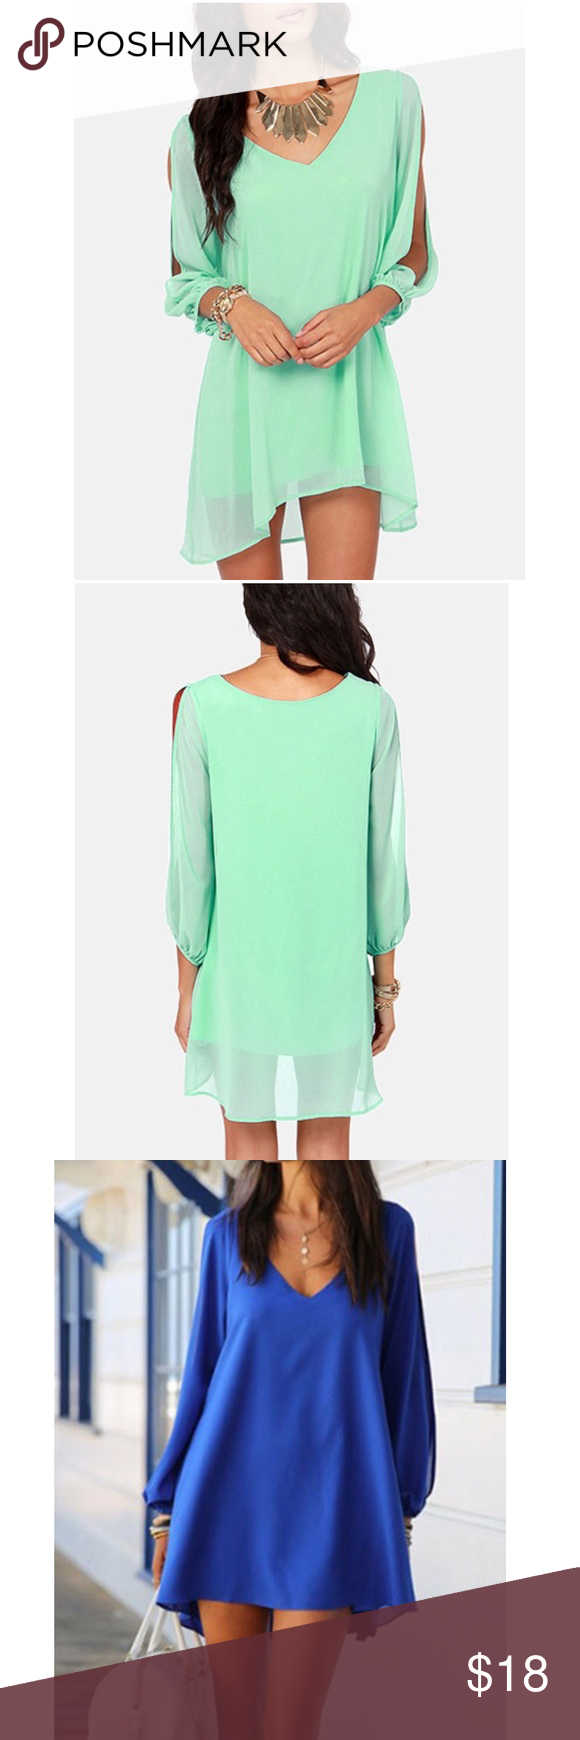 Gorgeous dress comes in mont green blue red black blush pink